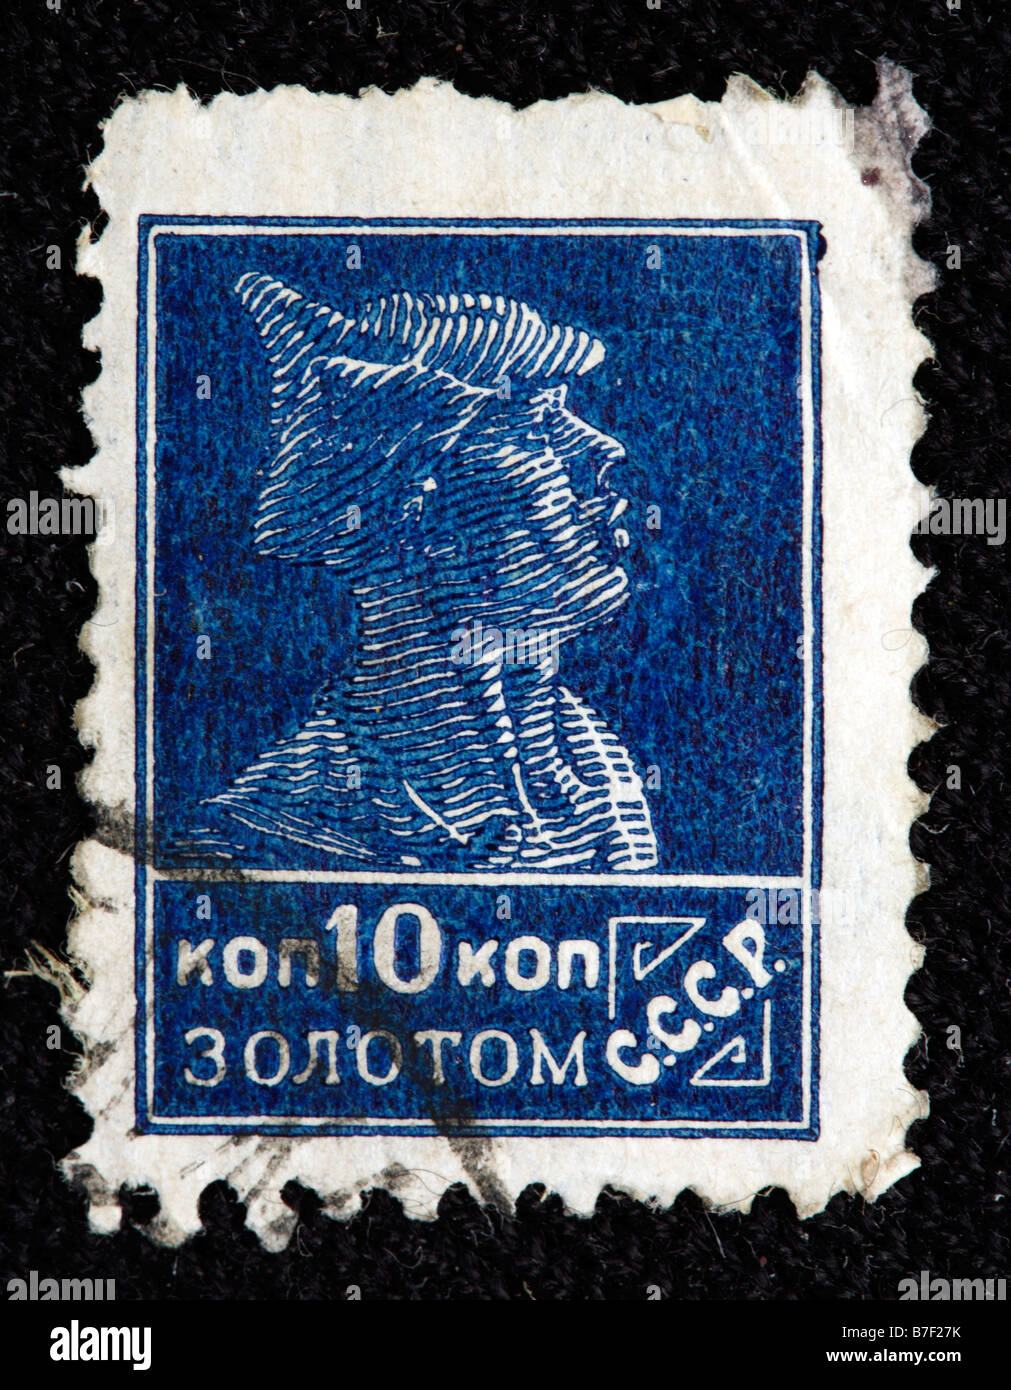 Soldier, postage stamp, USSR, 1920s - Stock Image